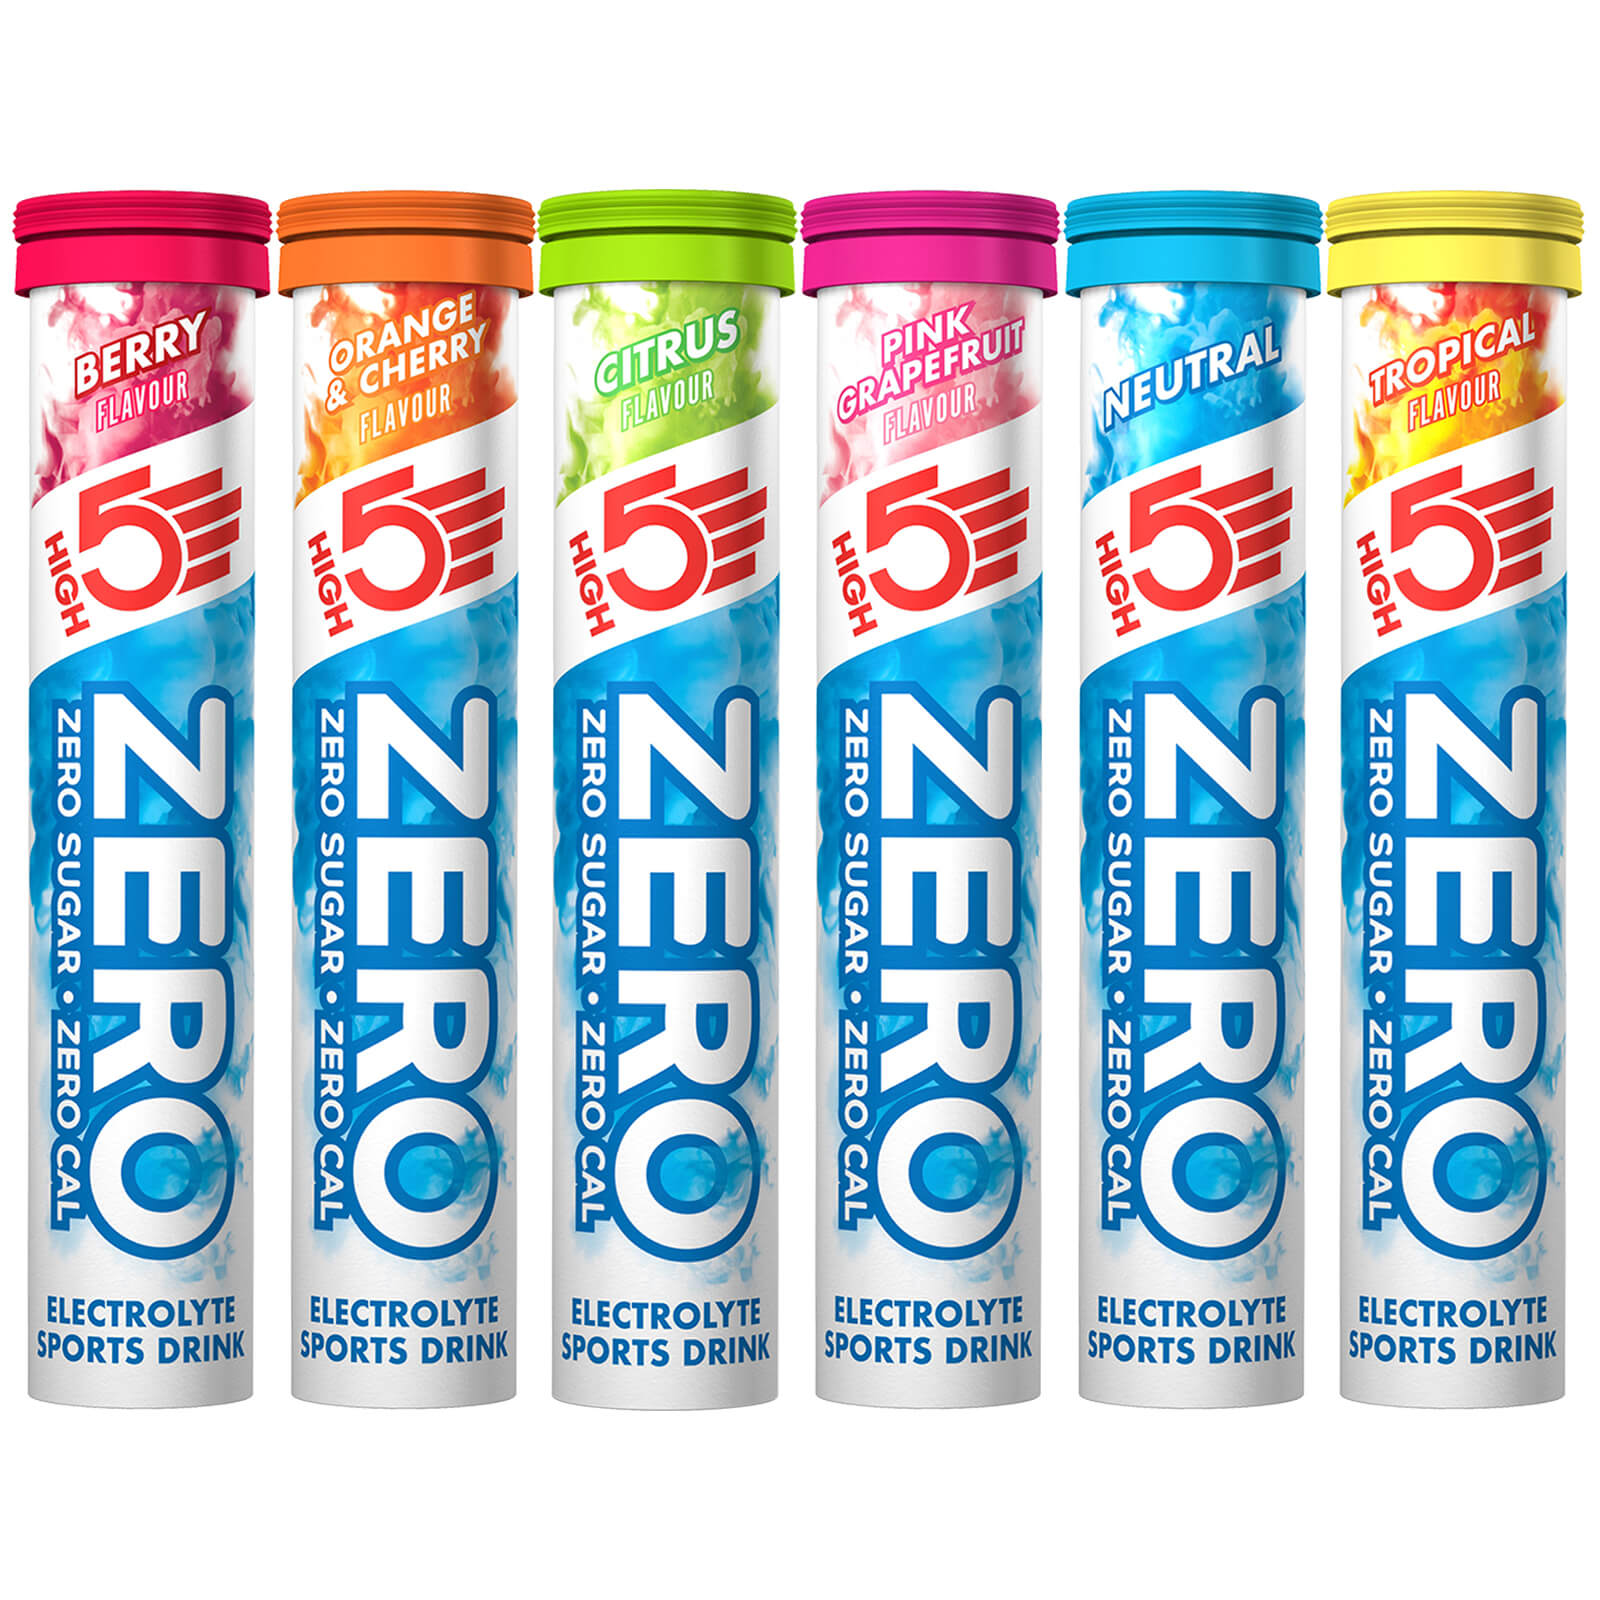 High5 ZERO Electrolyte Drink - Tube of 20